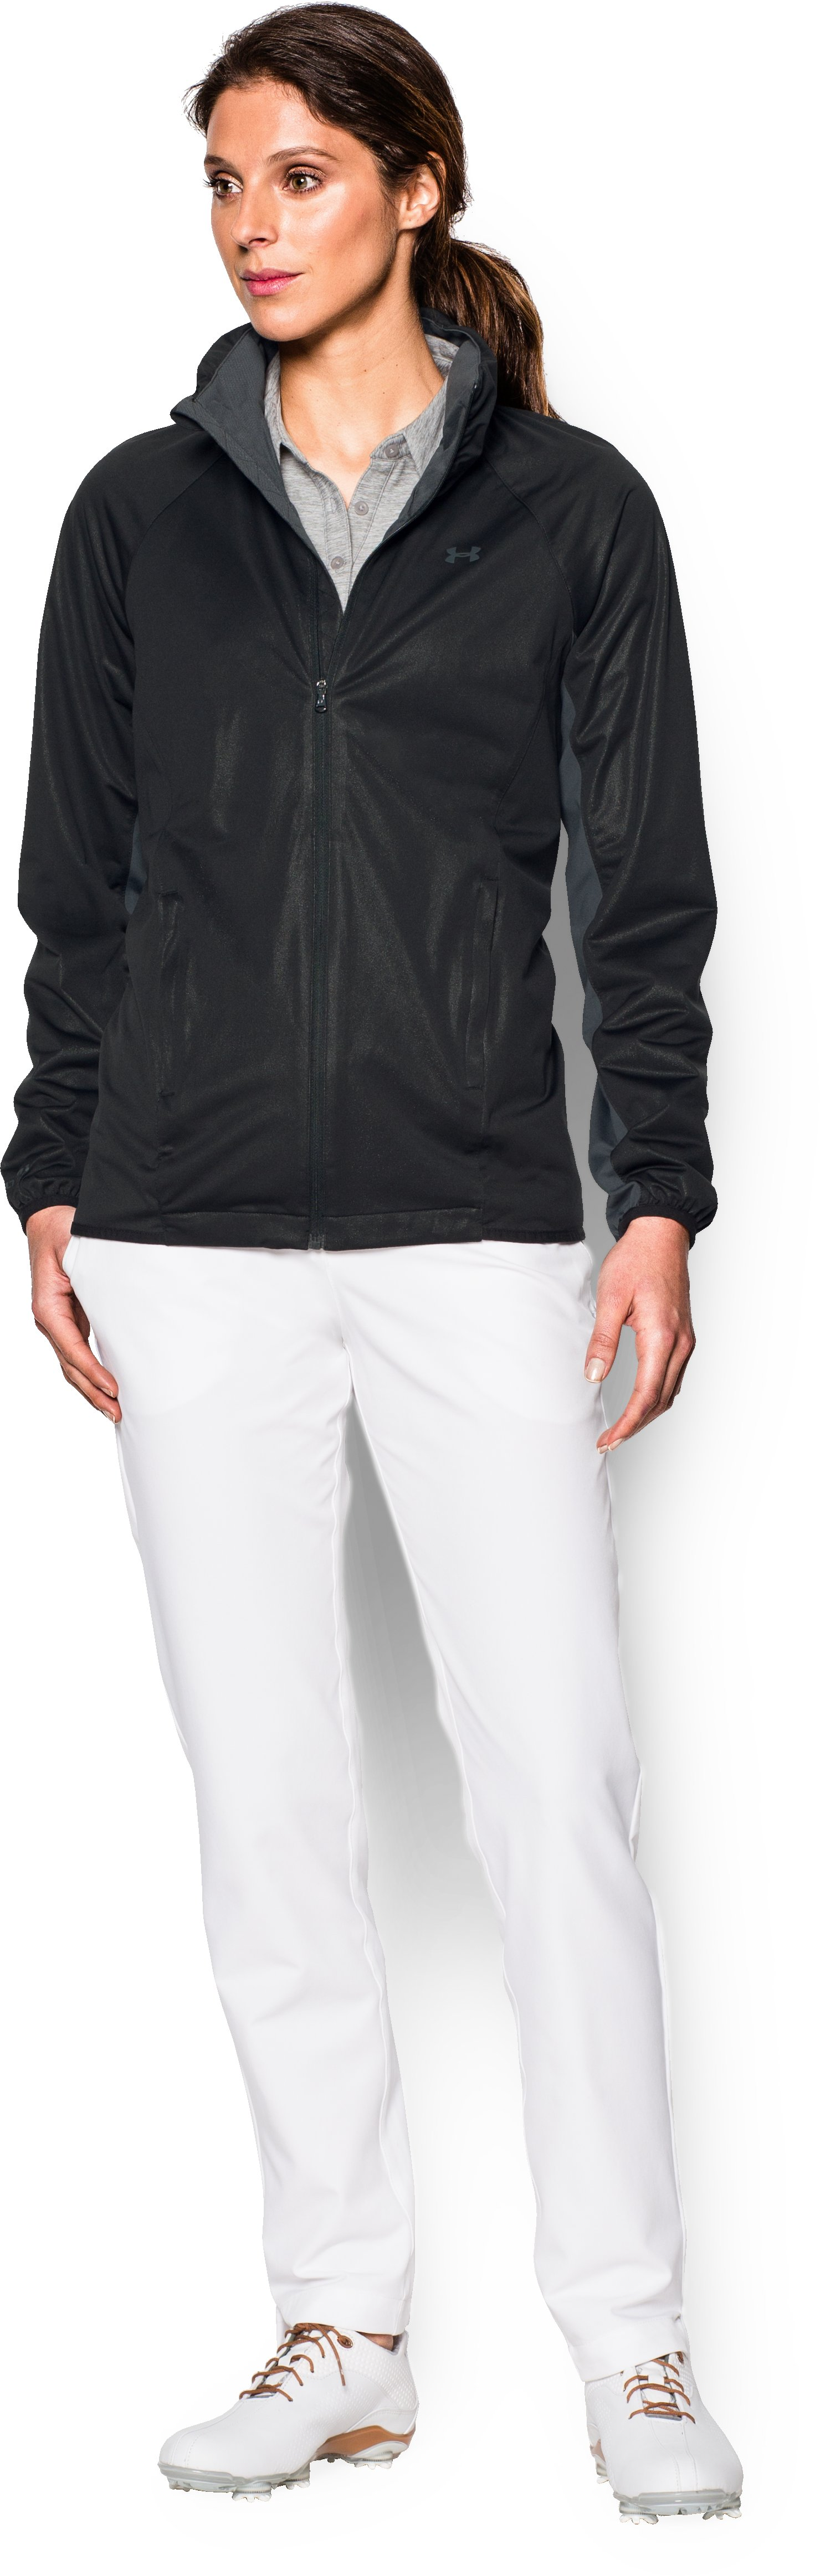 Women's UA Storm Golf Jacket, Black